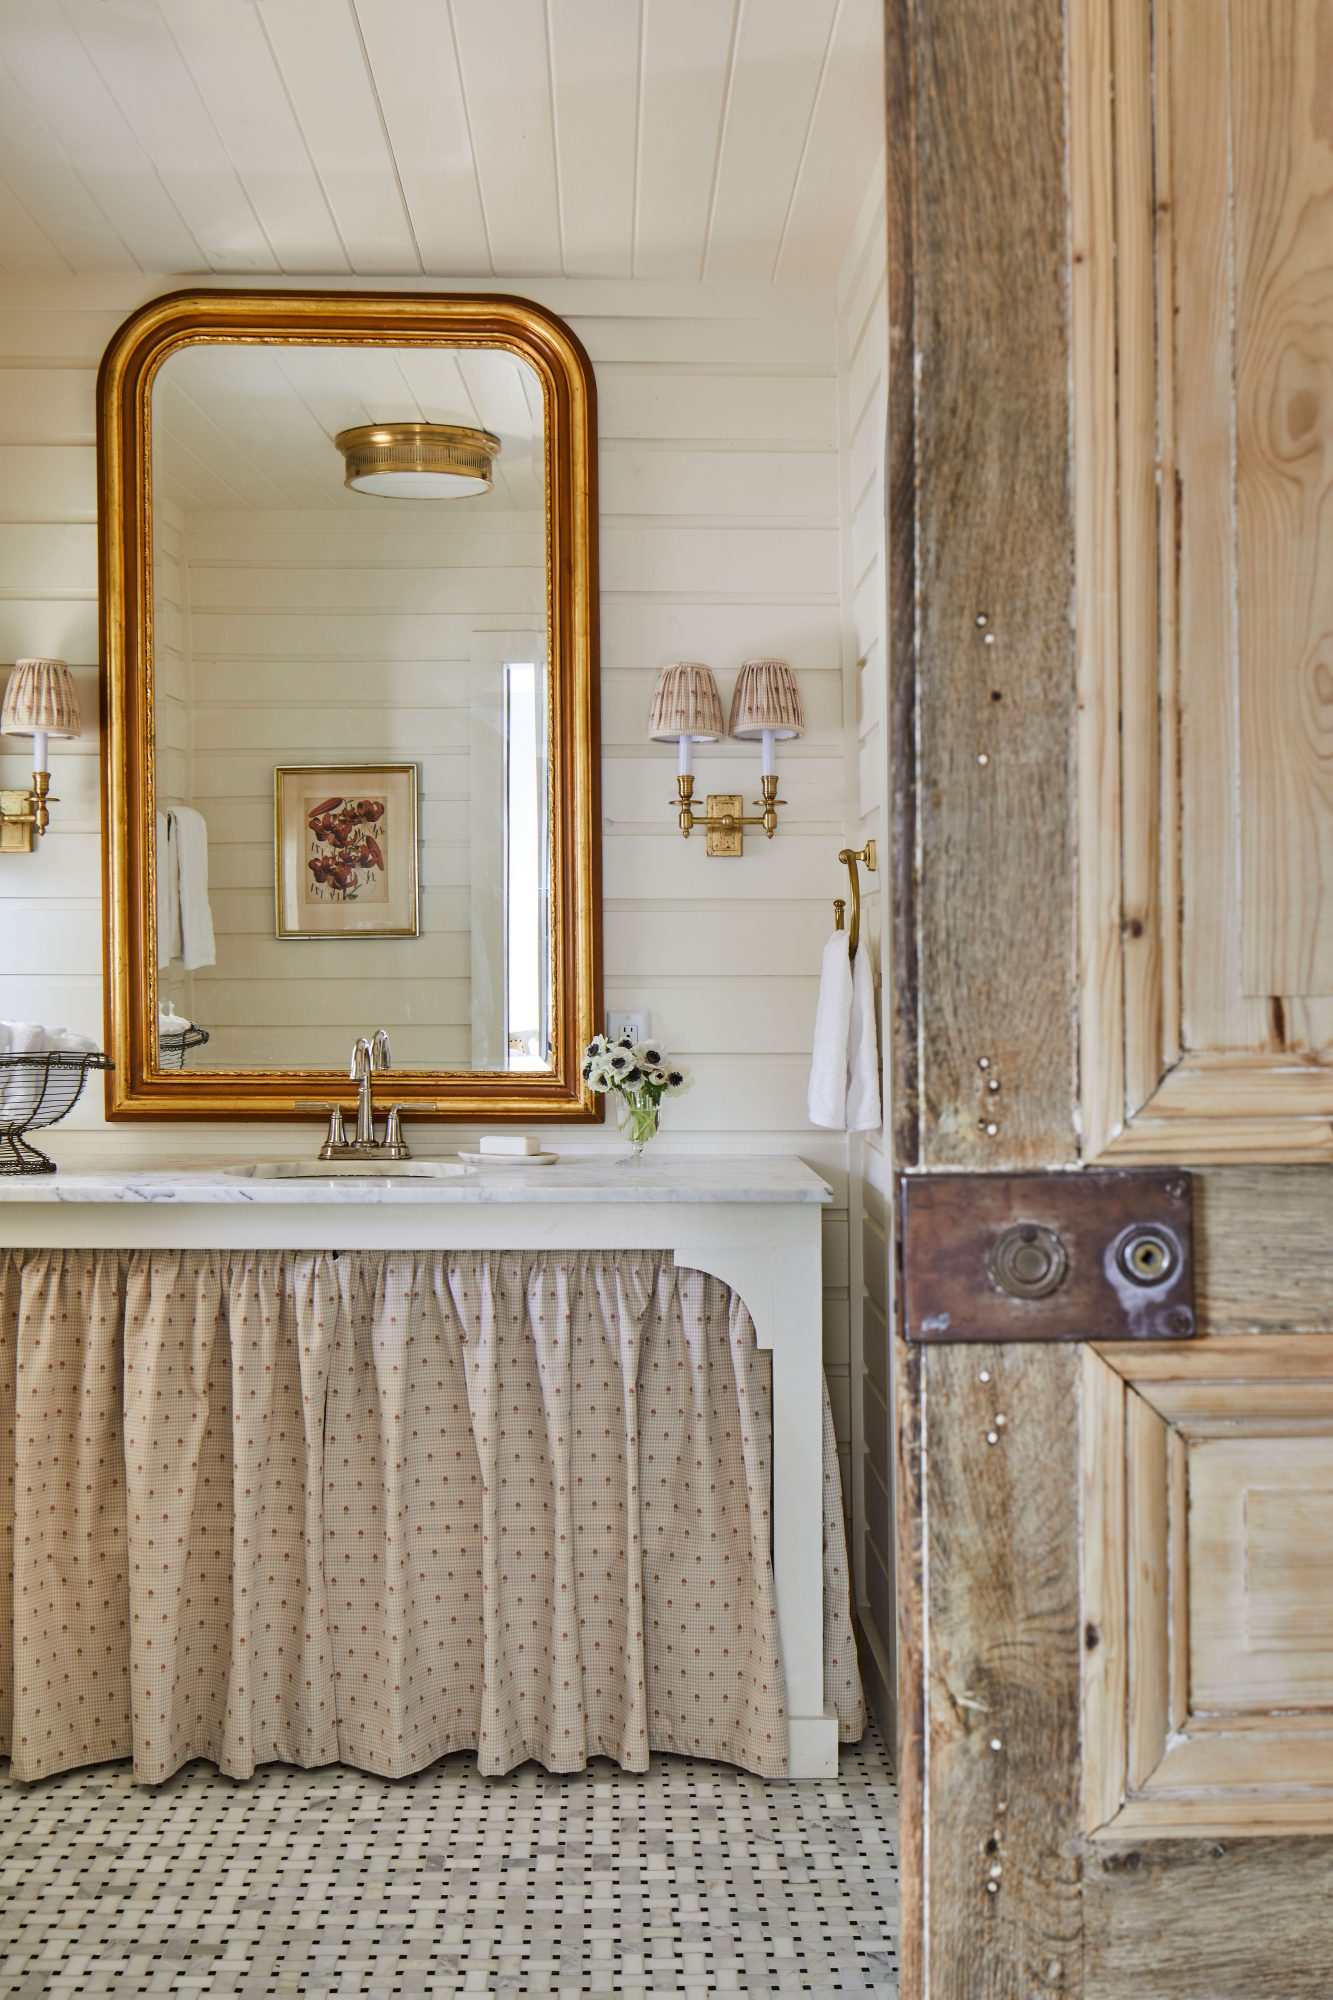 Cottage Style Main Bathroom in Marble and Neutral Colors